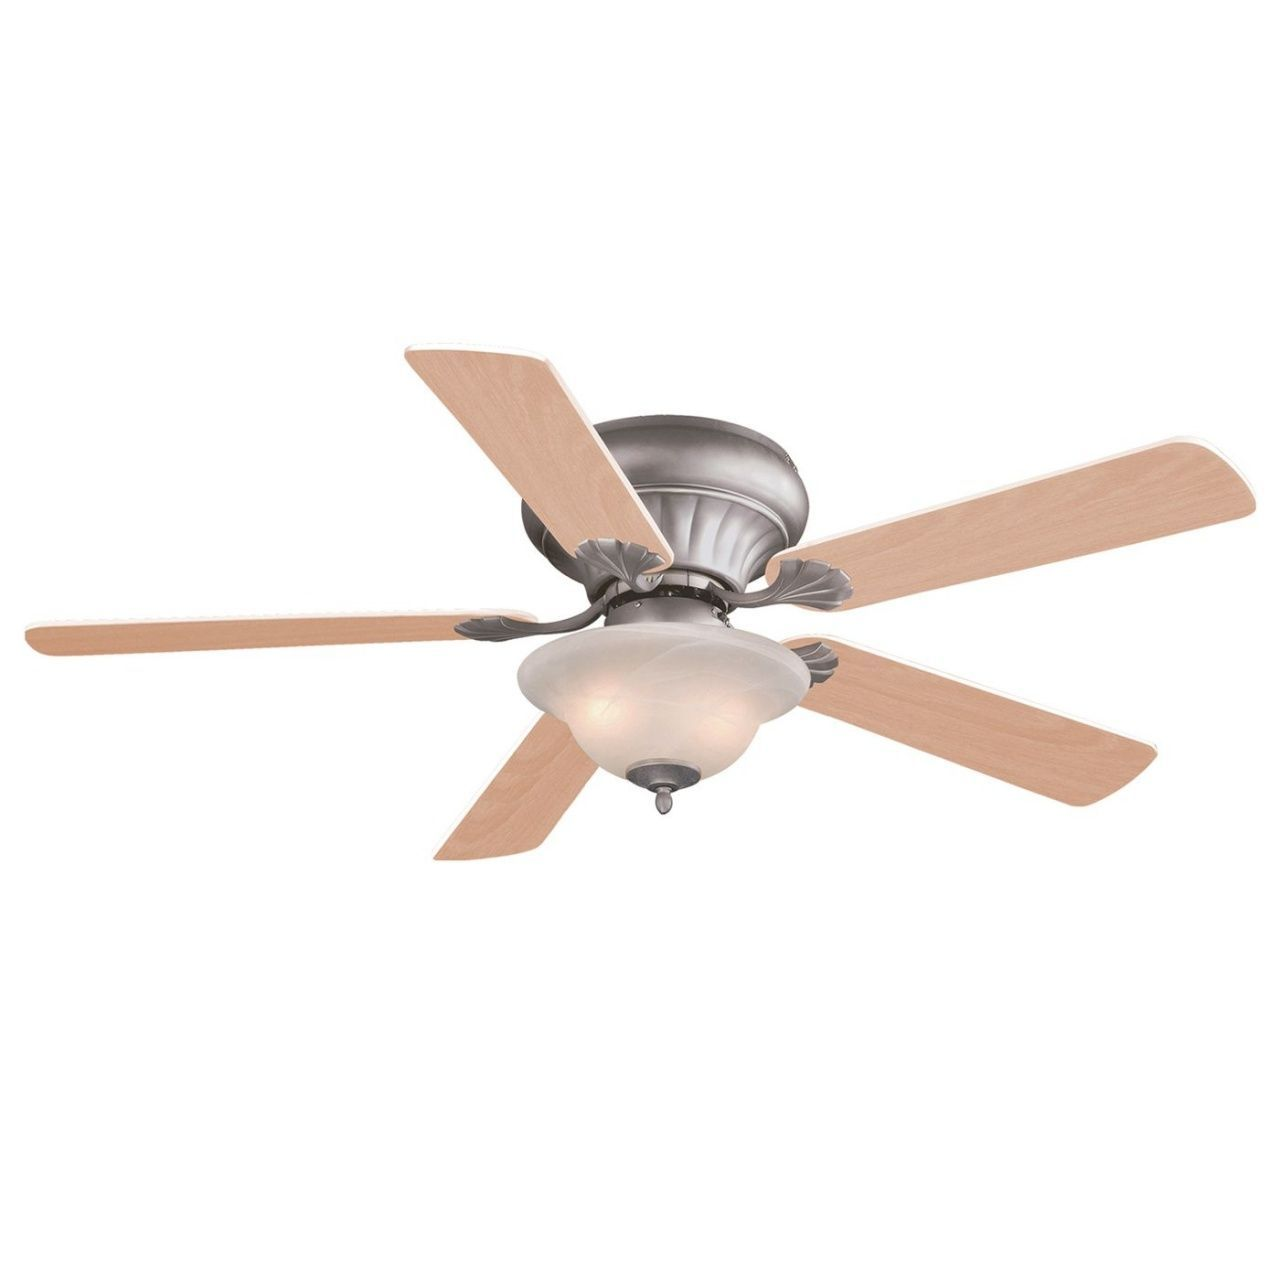 Fans With Lights Flush Mount In 2020 With Images Ceiling Fan